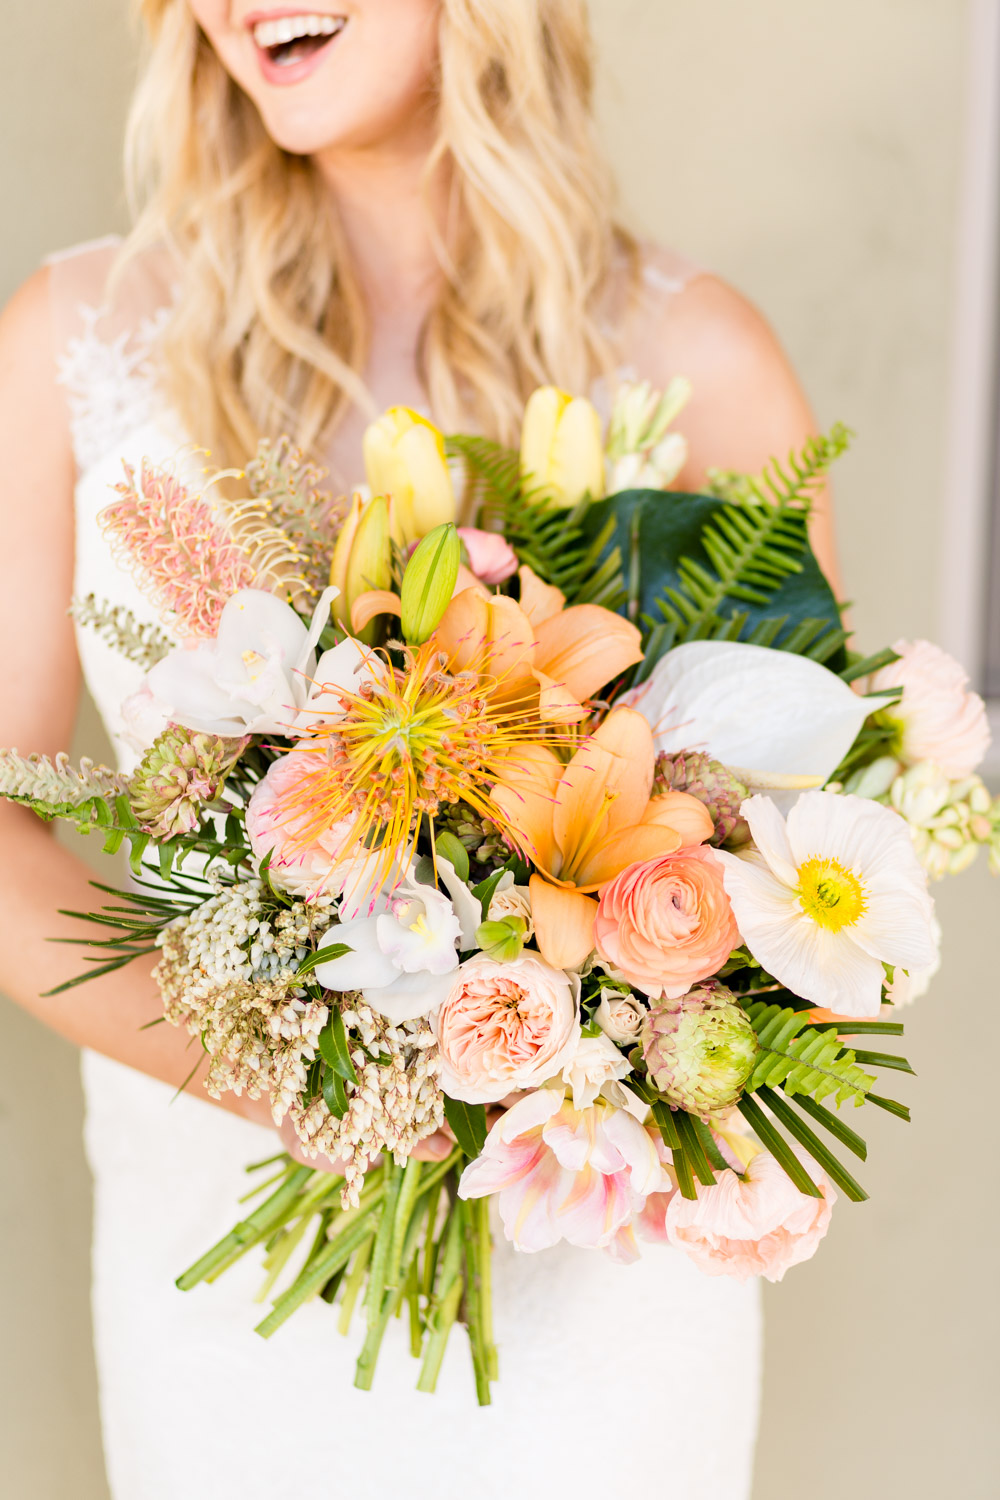 Large tropical bridal bouquet with pink orange white and green flowers and palm leaves by Leaf it to Lexi